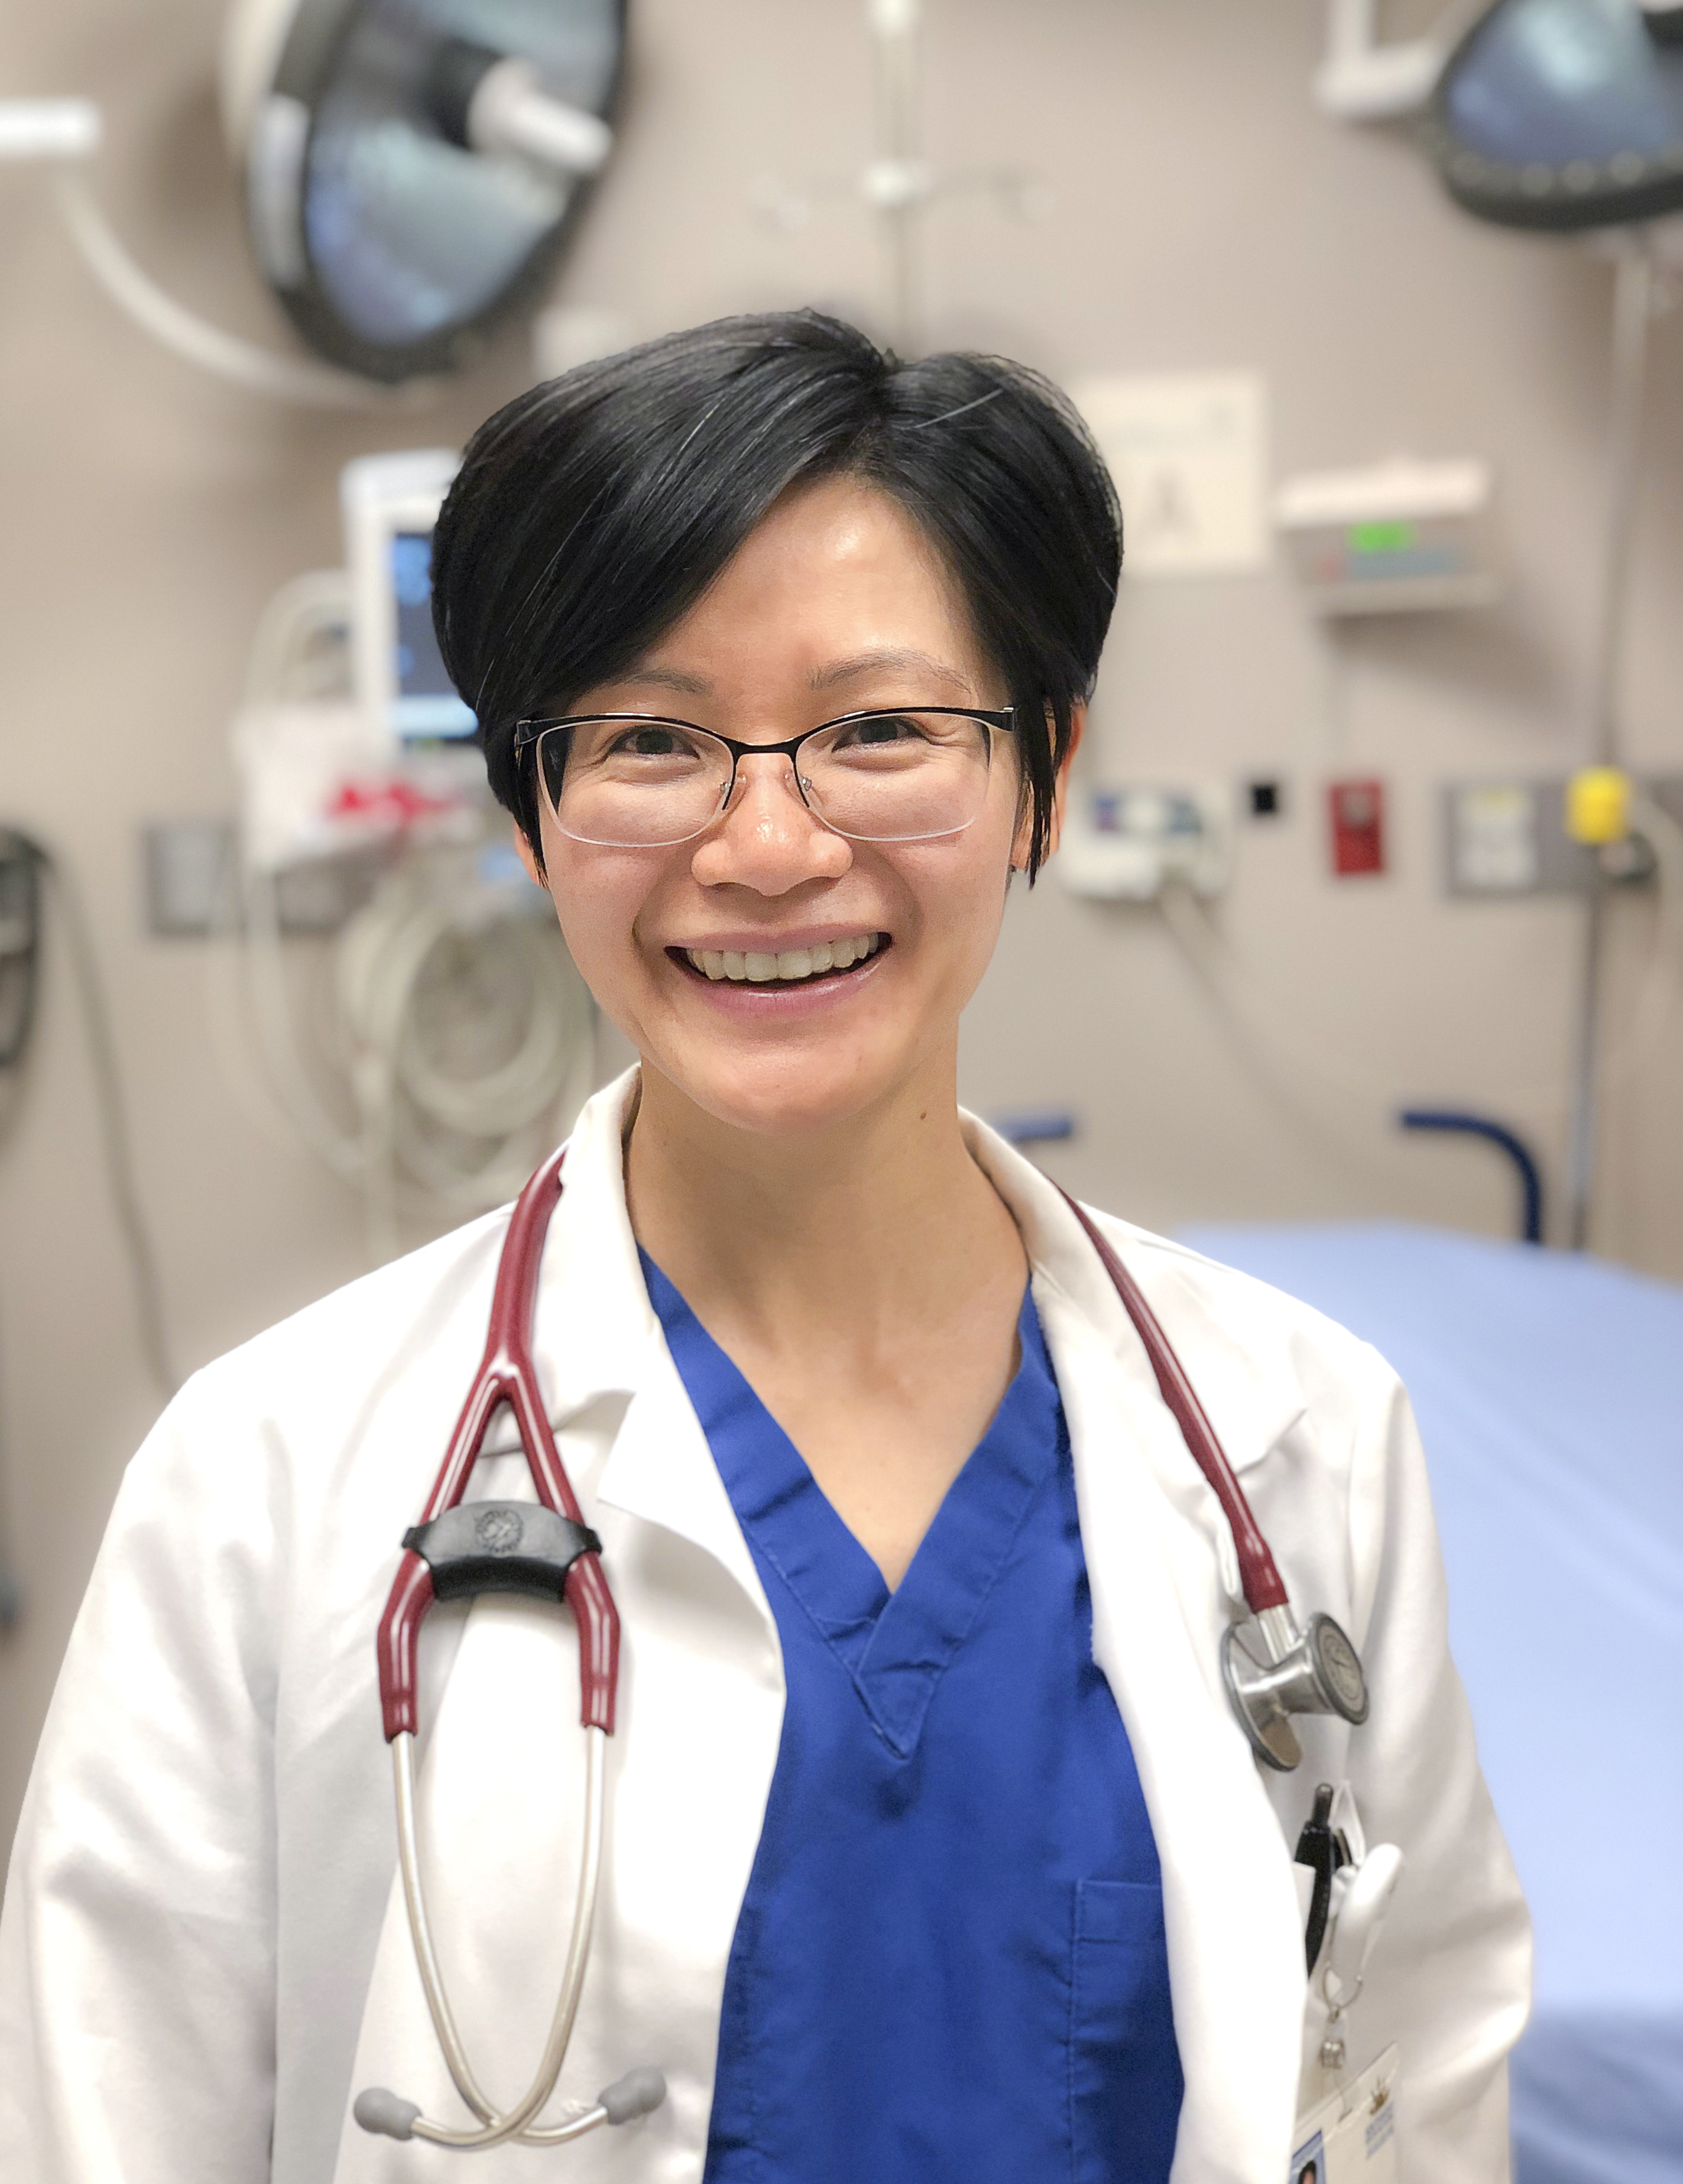 Amy M. Zheng, M.D., M.Phil., CHSE (Emergency Care / Urgent Care Expert)